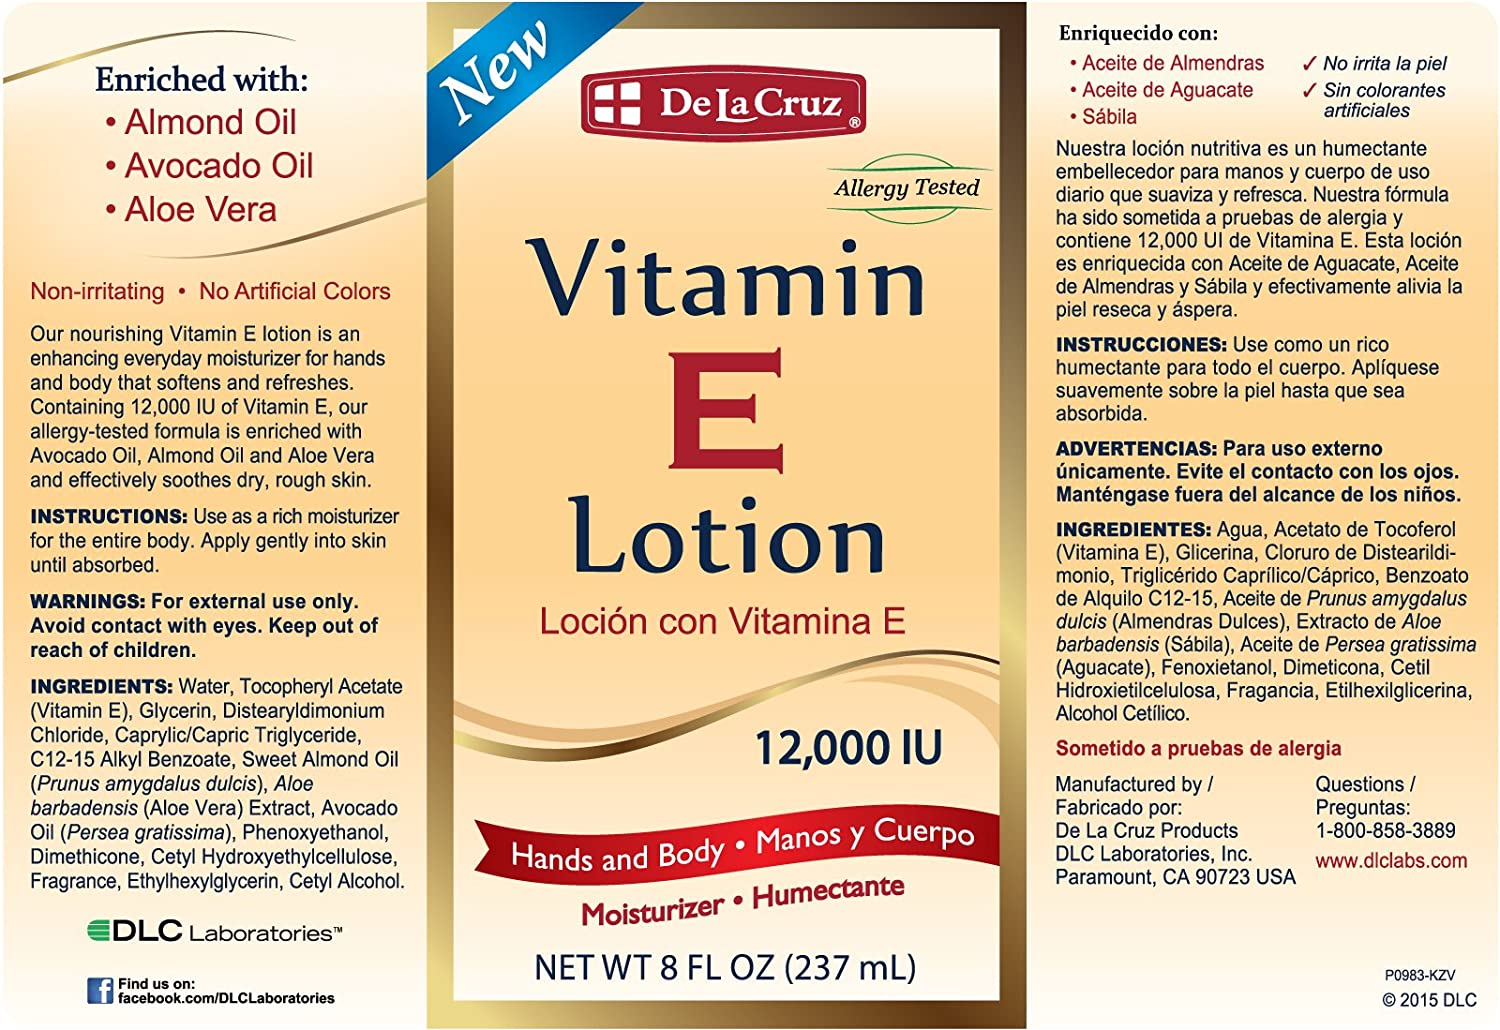 Amazon.com : De La Cruz Vitamin E Lotion 12, 000 IU 8 FL. OZ./Allergy Tested & Made in USA : Beauty